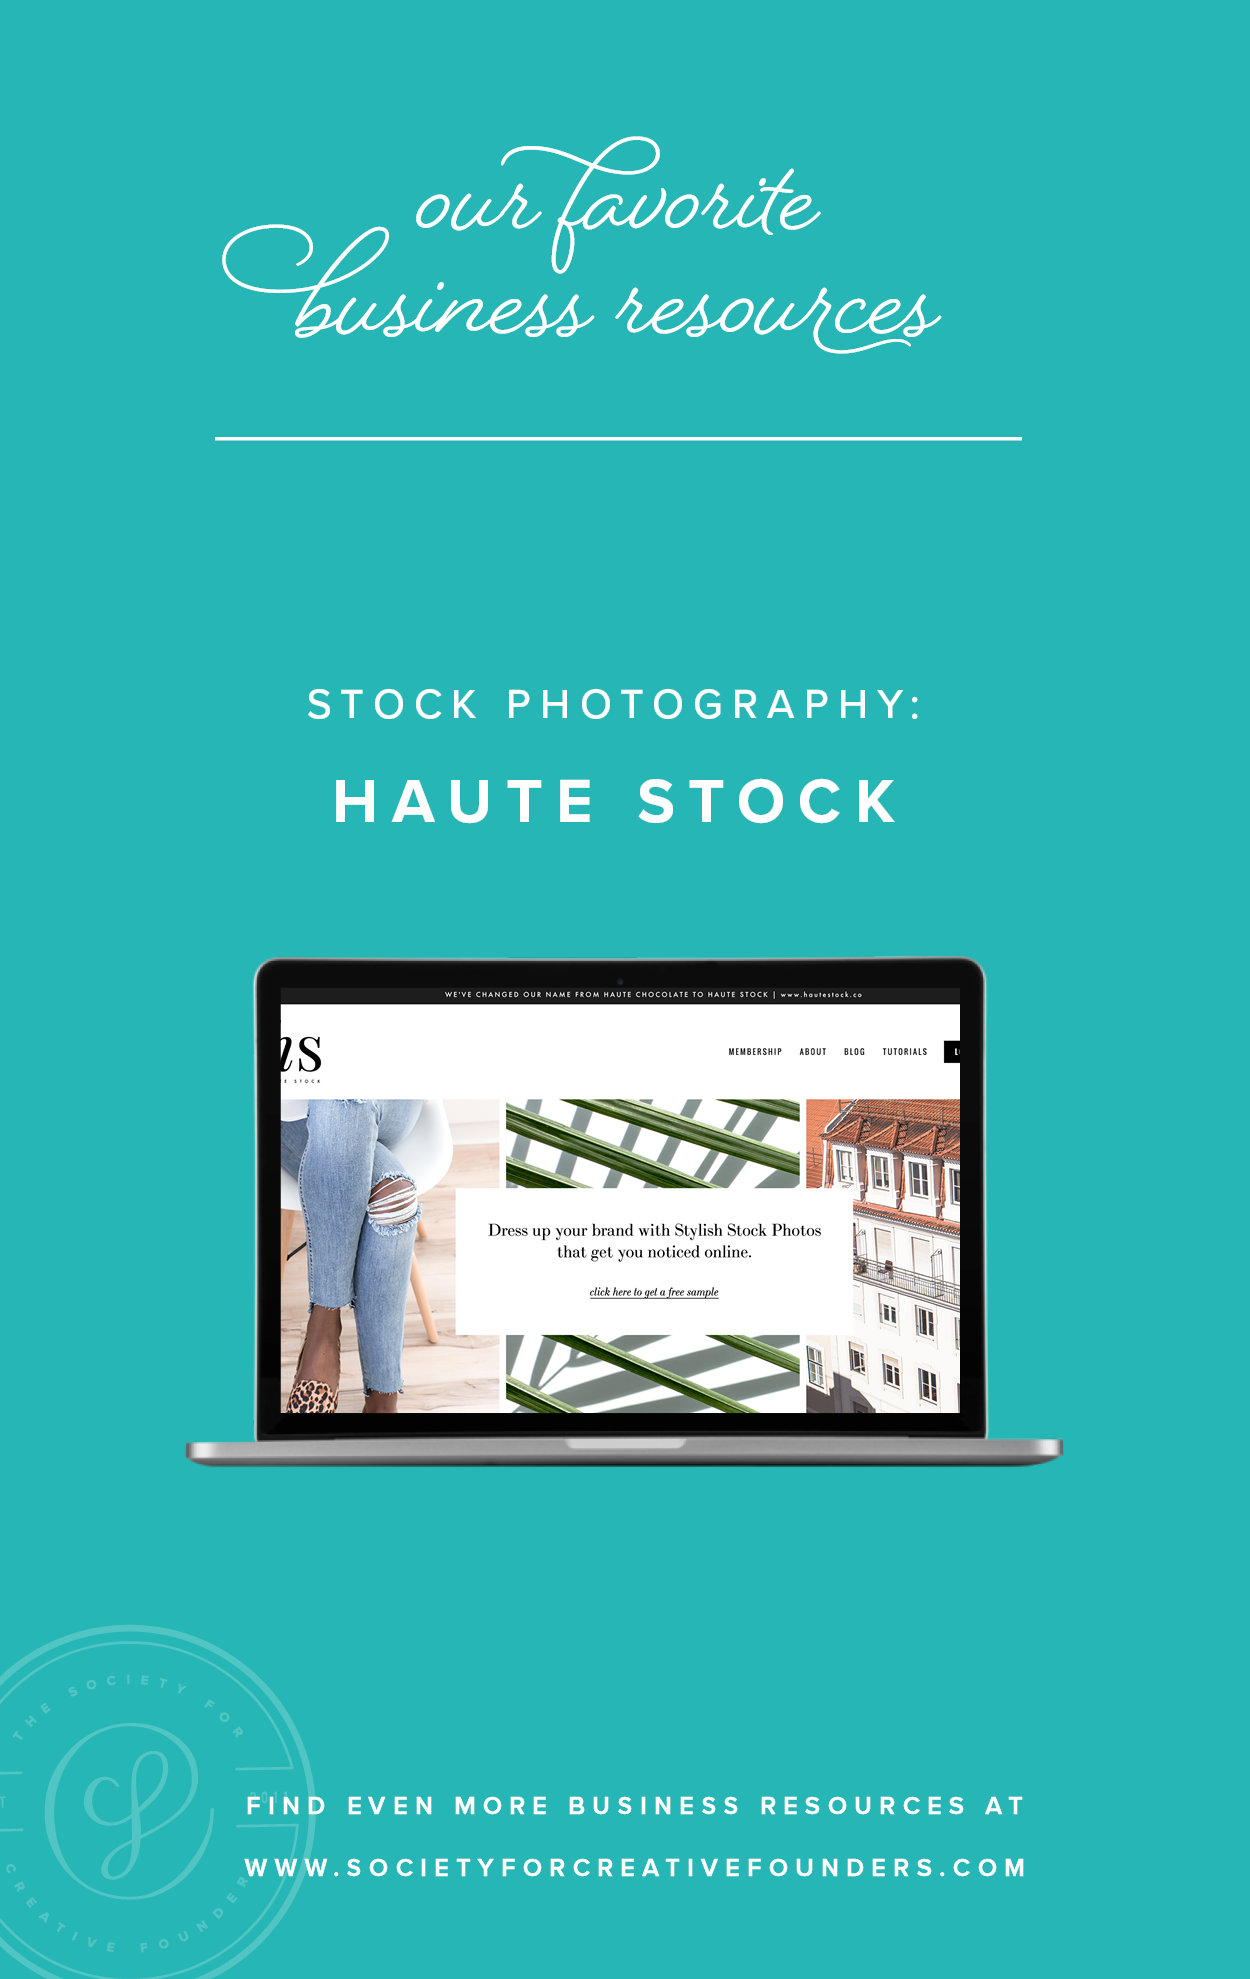 Haute Stock for Stock Photography - Favorite Business Resources from Society for Creative Founders